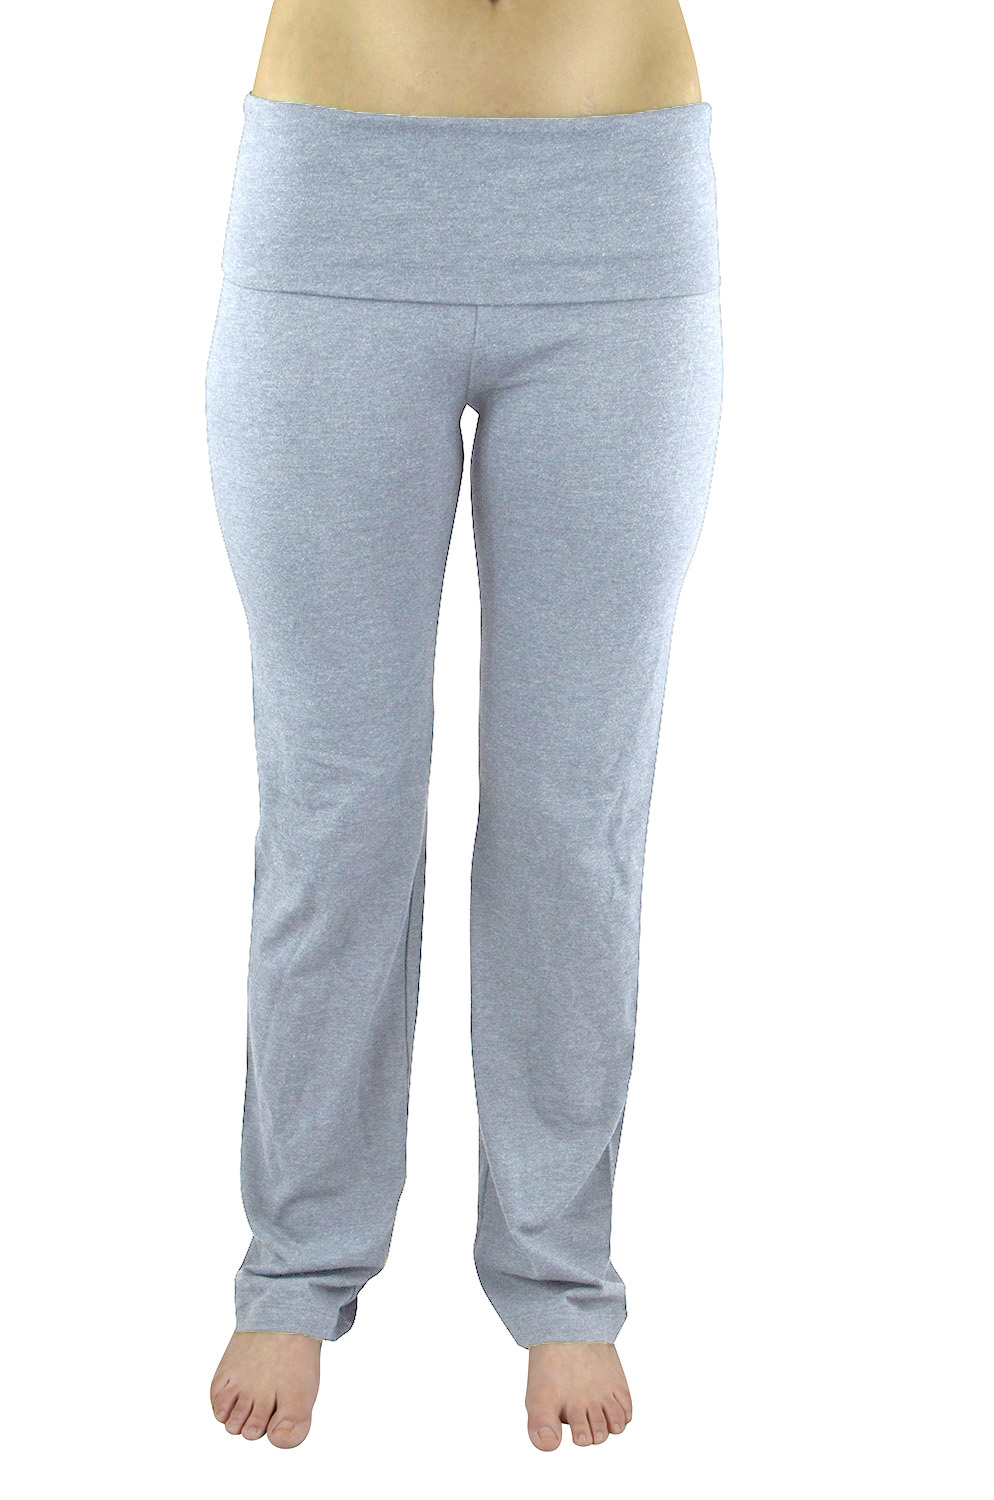 Belle Donne- Women's Solid Color Stretch Gym Casual Yoga Pants -H. Grey/Small